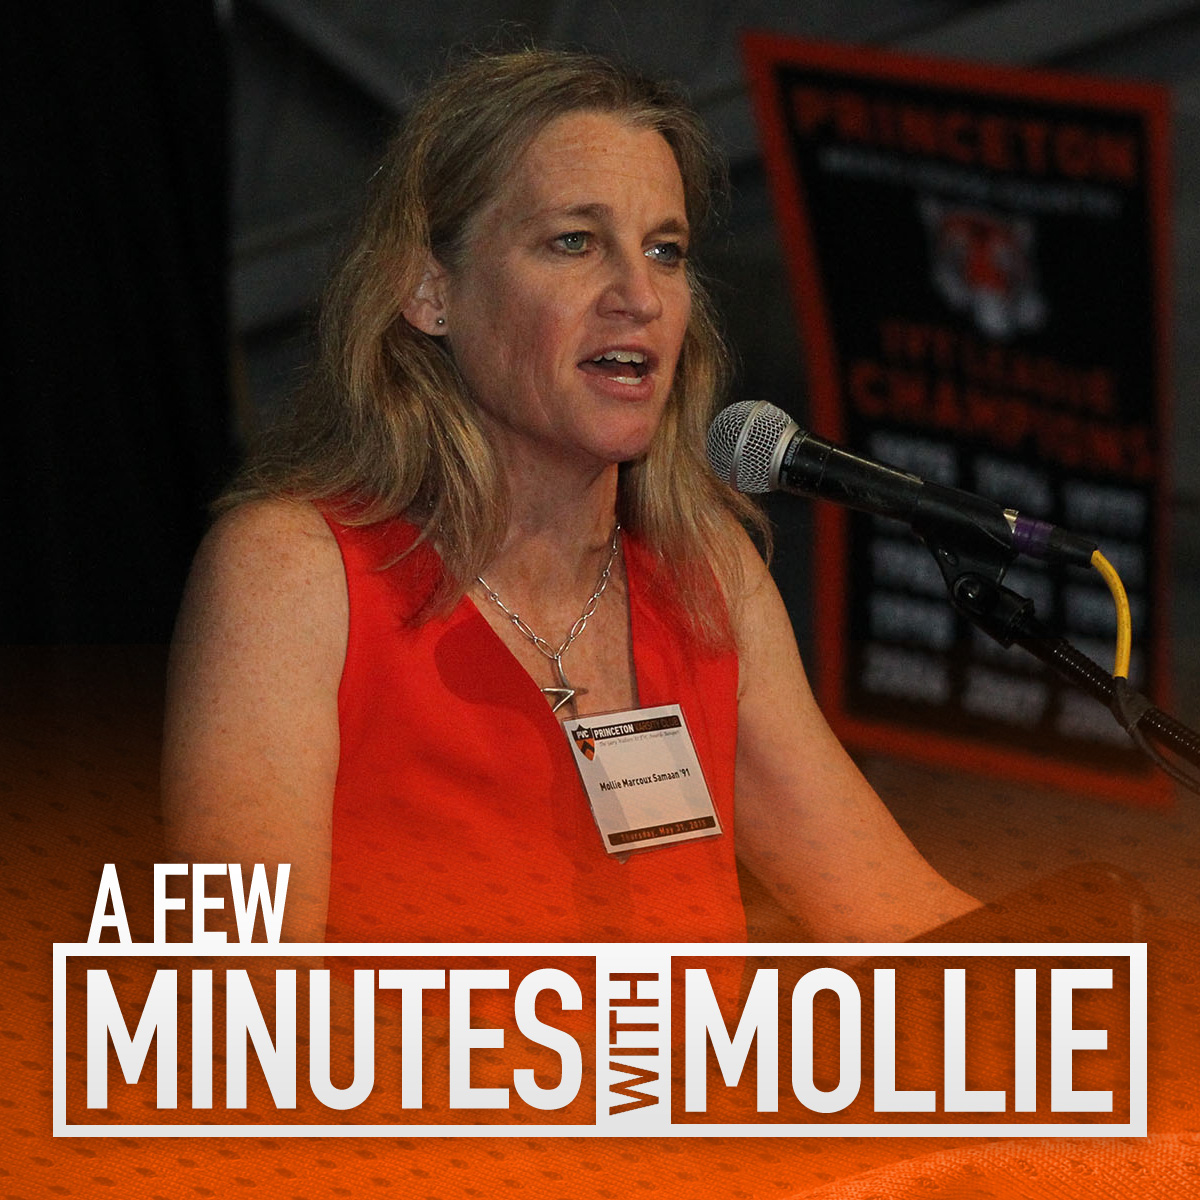 A Few Minutes With Mollie Marcoux Samaan